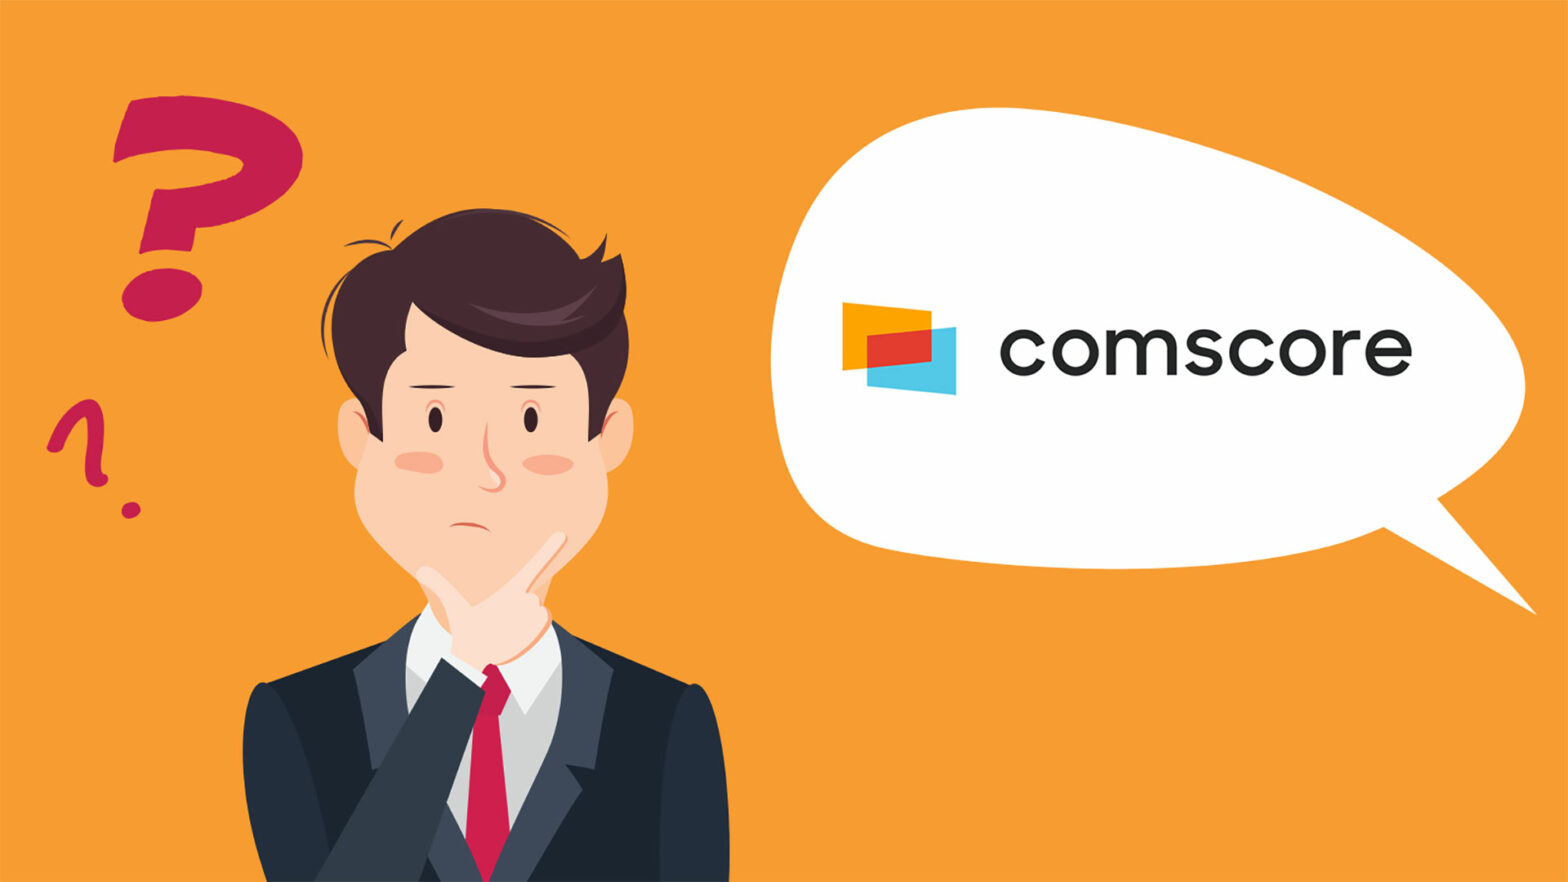 ComScore: What are they and how their rankings actually work